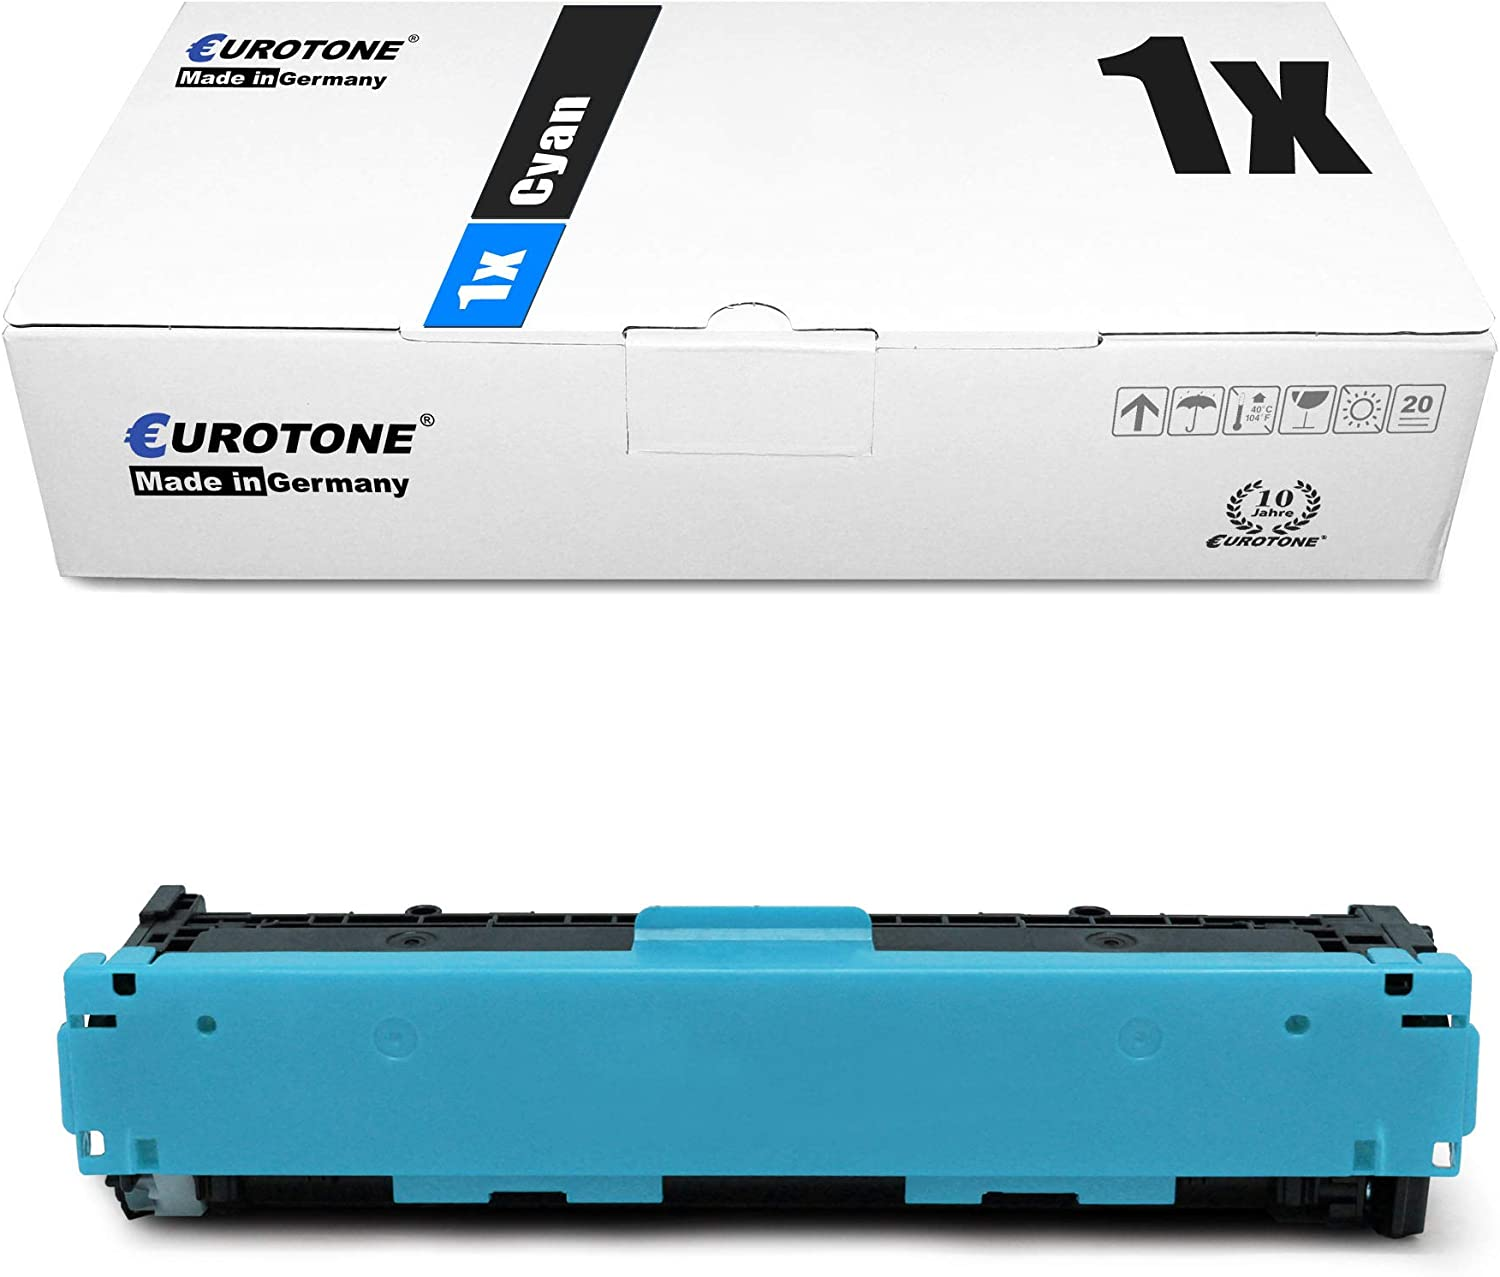 10x Eurotone Remanufactured Toner for HP Color Laserjet Pro M 252 274 dw dn n Replaces CF400A-03A 201A